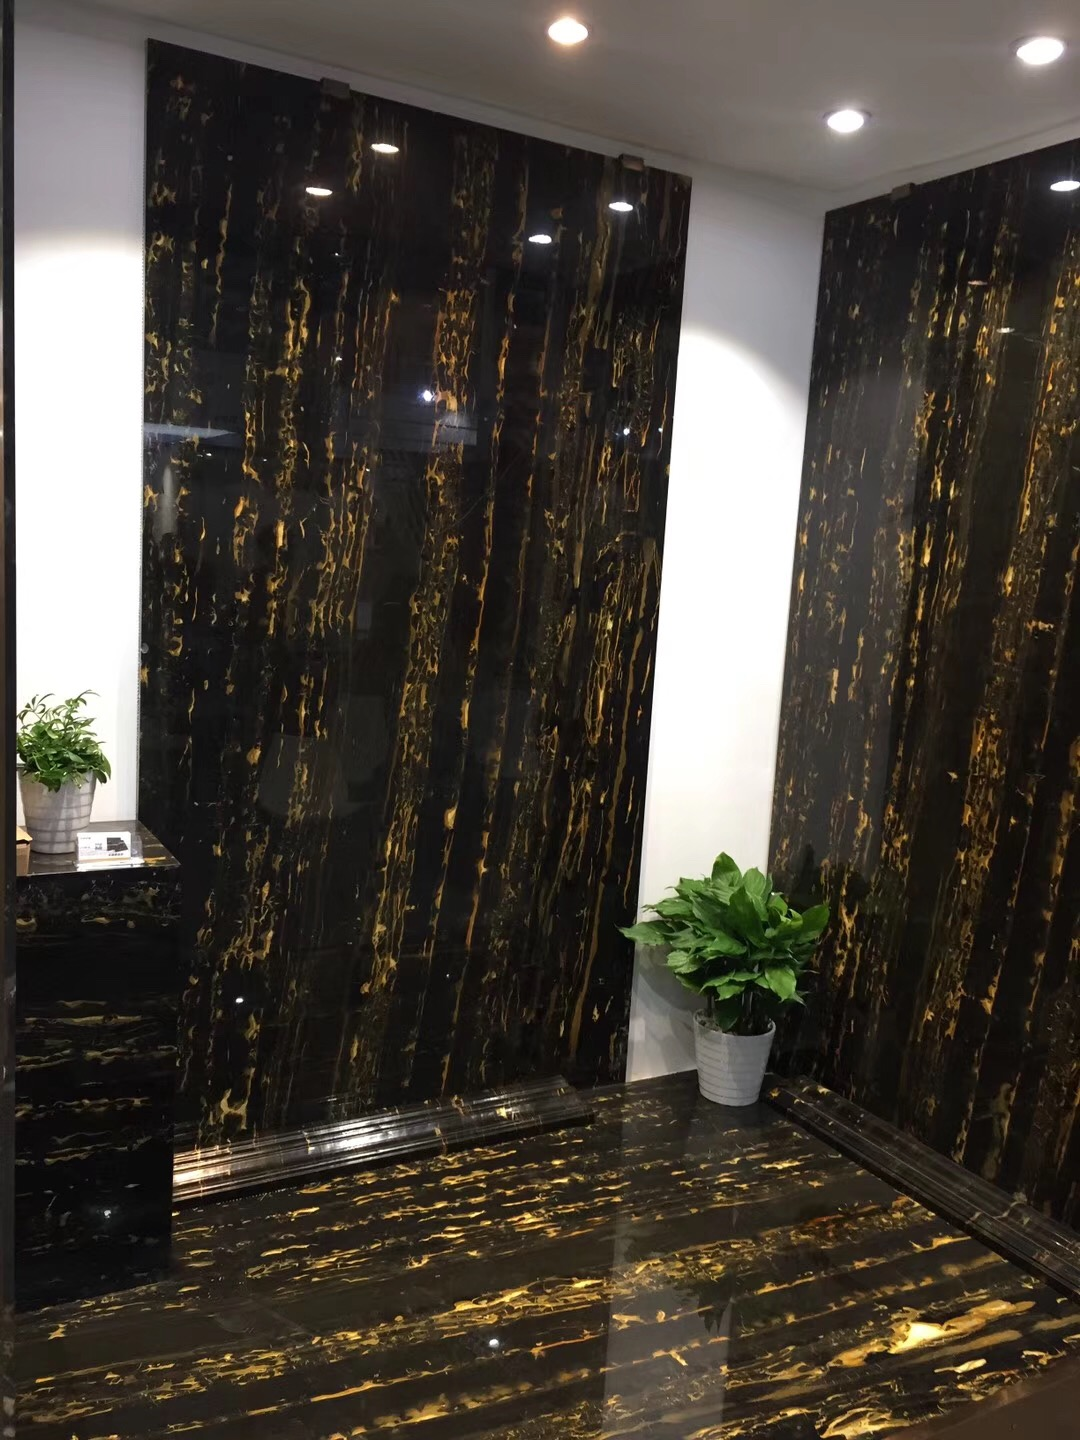 Portoro marble,black gold marble,black and gold marble,black marble floor,marble gold,black marble stone,portoro,nero portoro marble,nero portoro